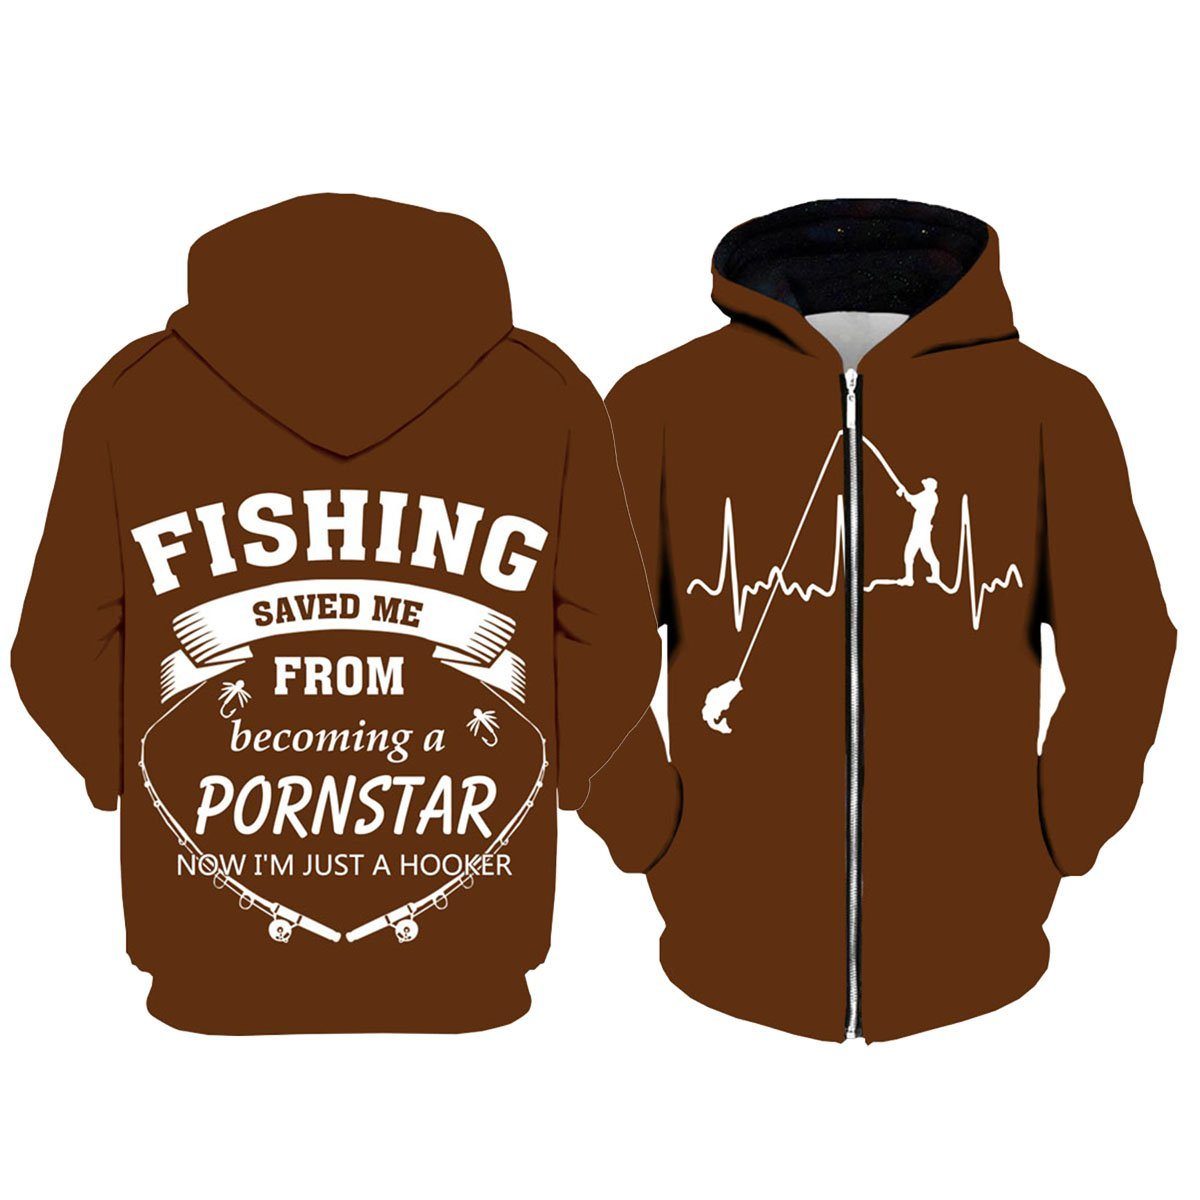 Fishing Hoodies - 3D Print Unisex Pull Over Hoodies - Fishing Saved Me From Becoming